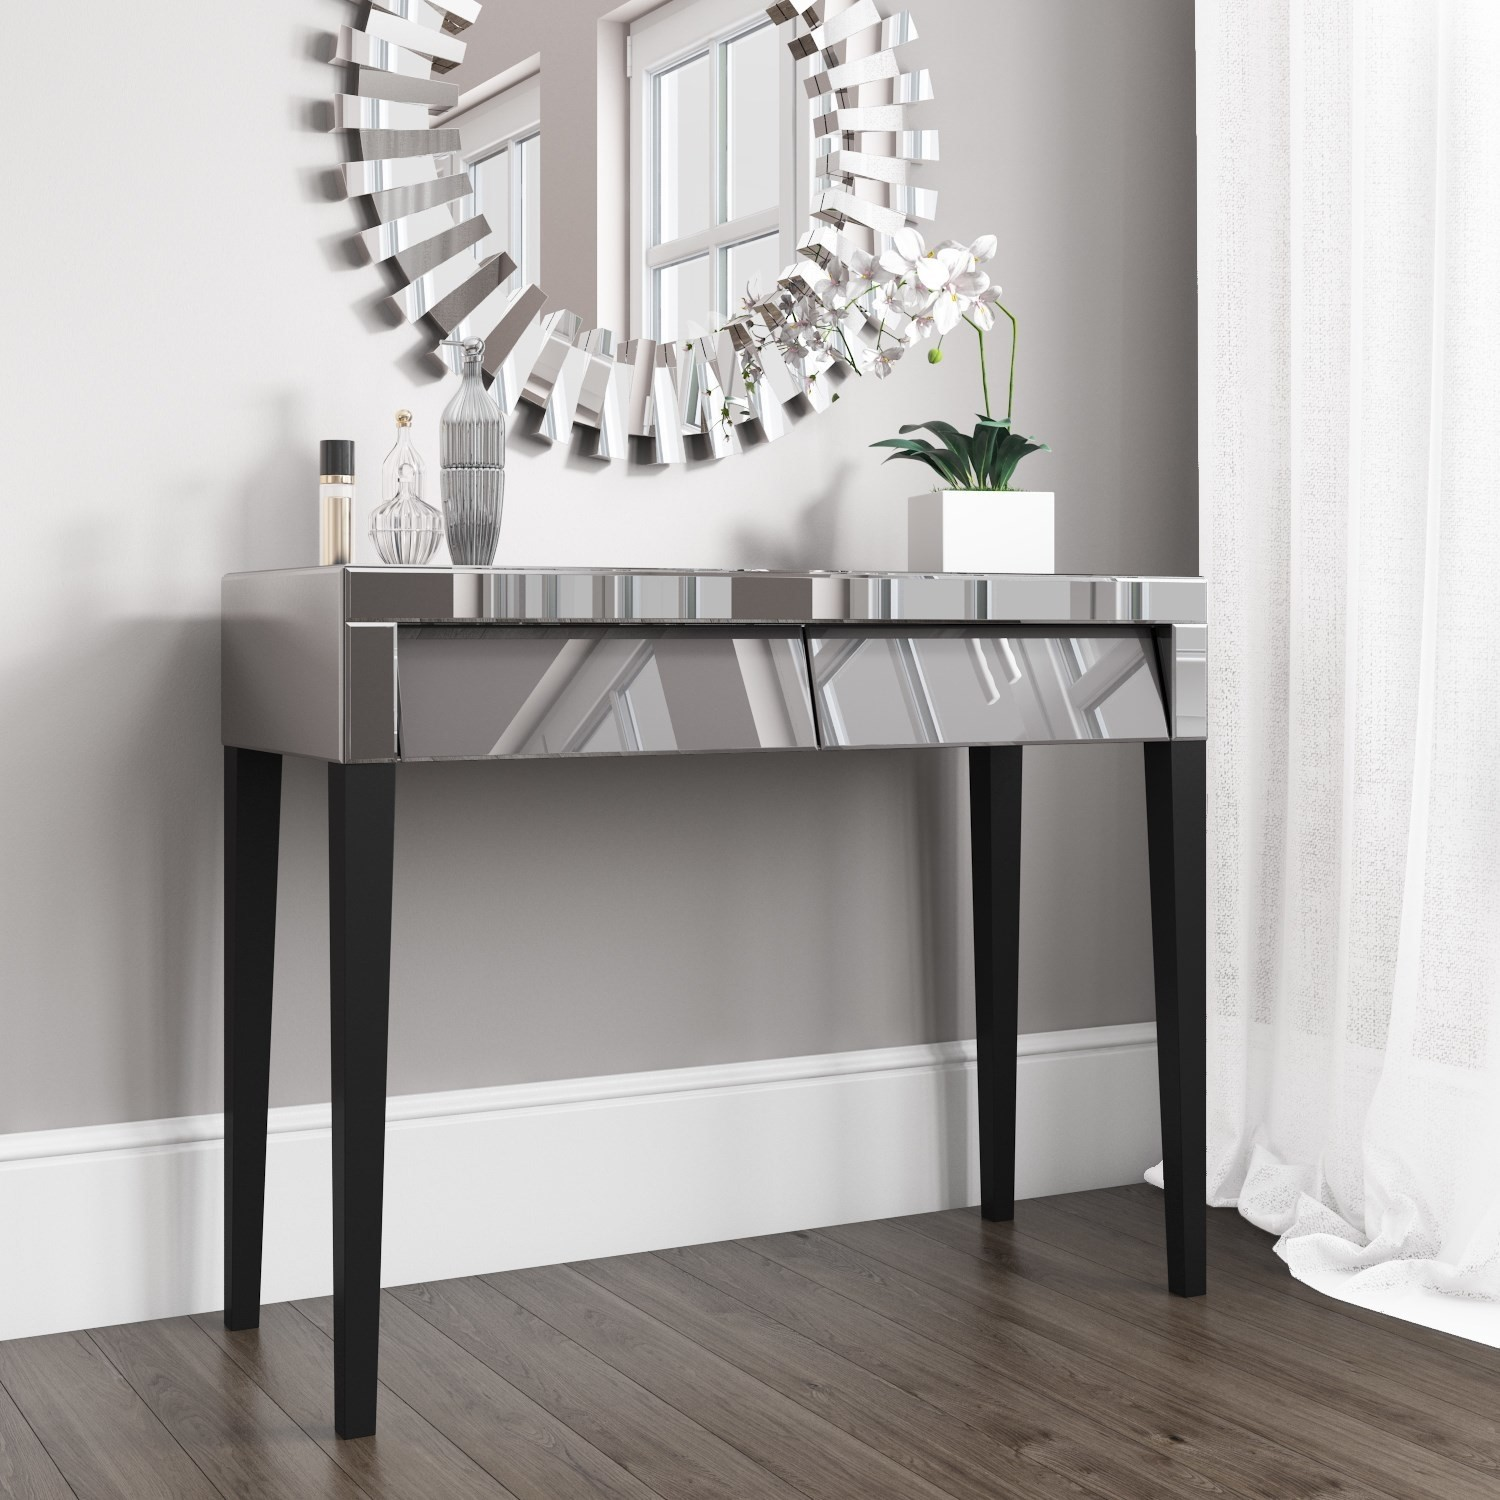 Valentina Venetian Grey Mirrored Console Table Furniture123